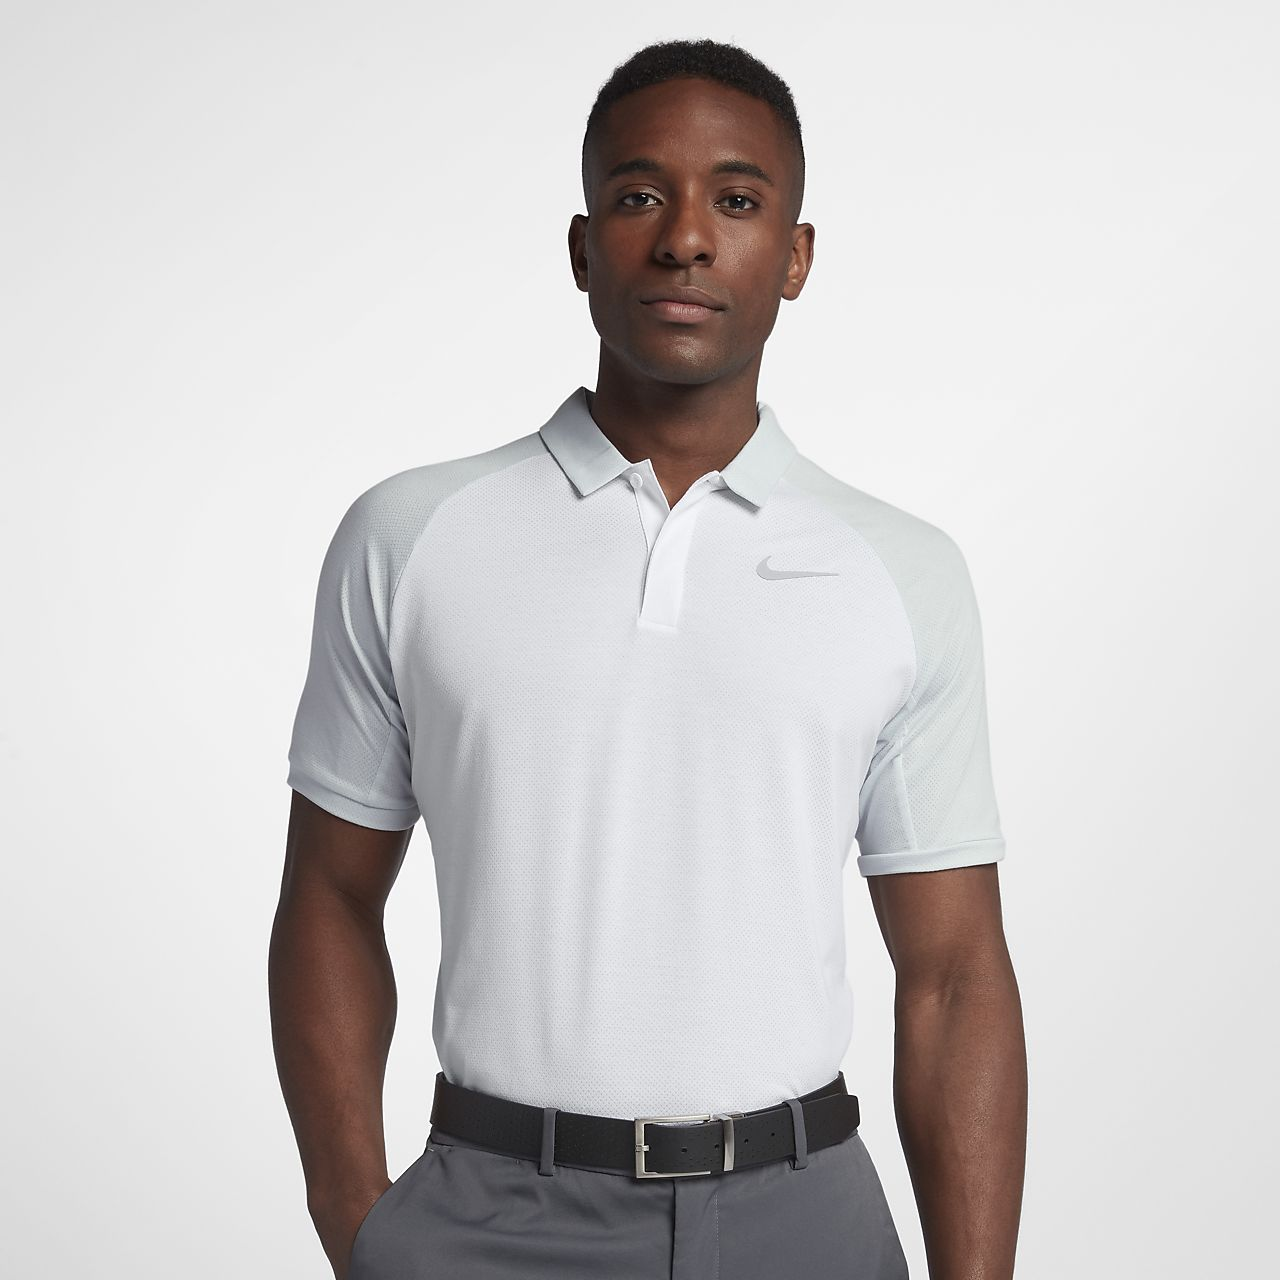 Nike Dri-FIT Men's Standard Fit Golf Polo